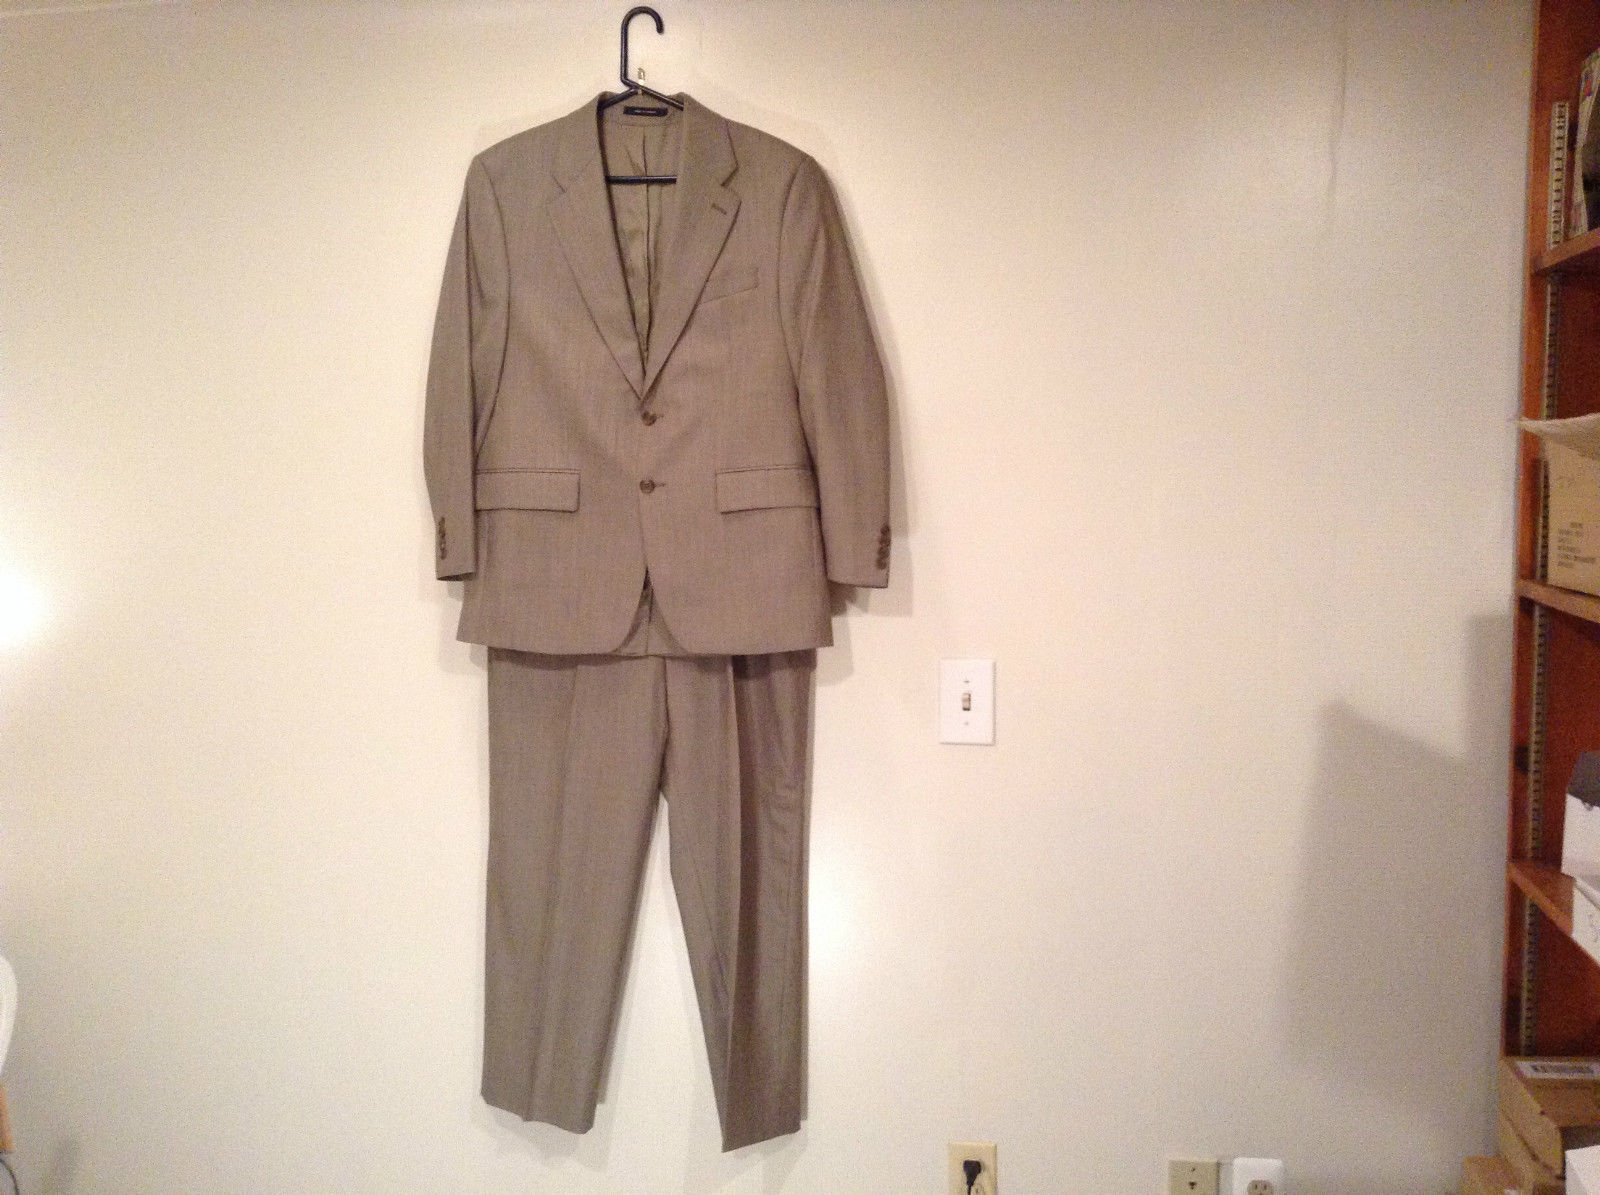 Zohreh Couture Brown 2 Button Closure Suit Jacket and Pants Measurements Below